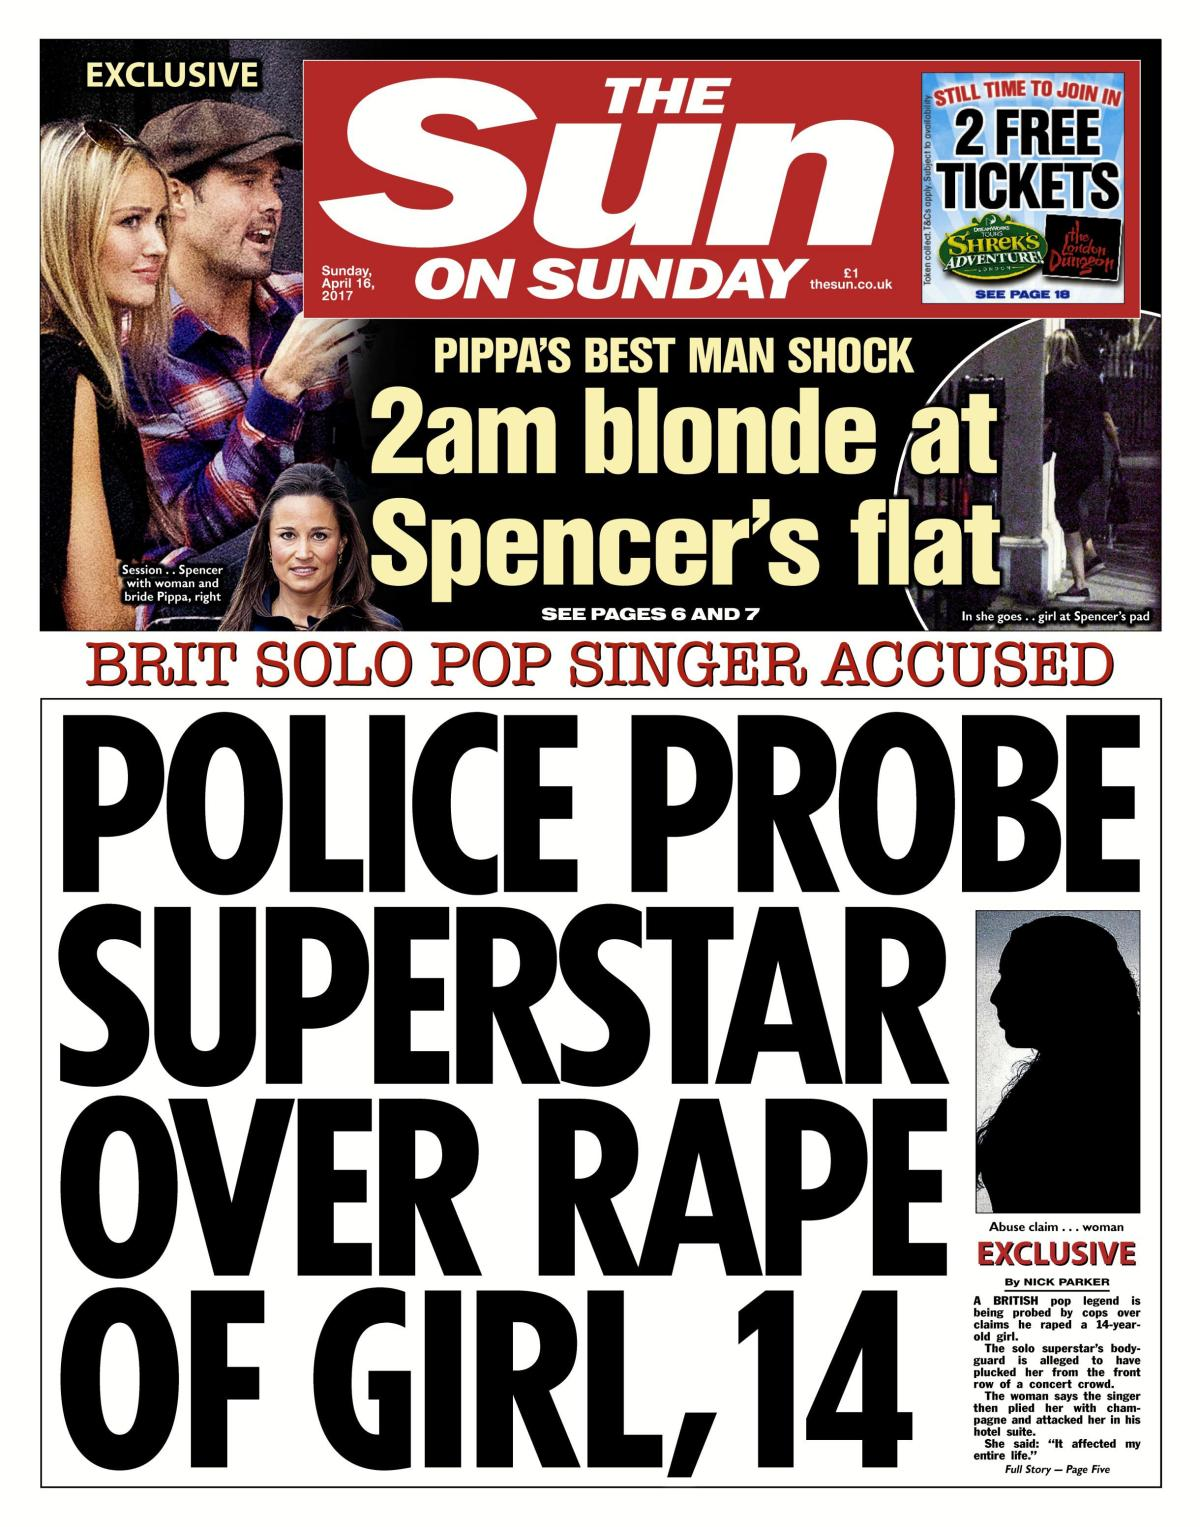 The Sun on Sunday revealed on April 16 how the pop star was being probed over a rape claim